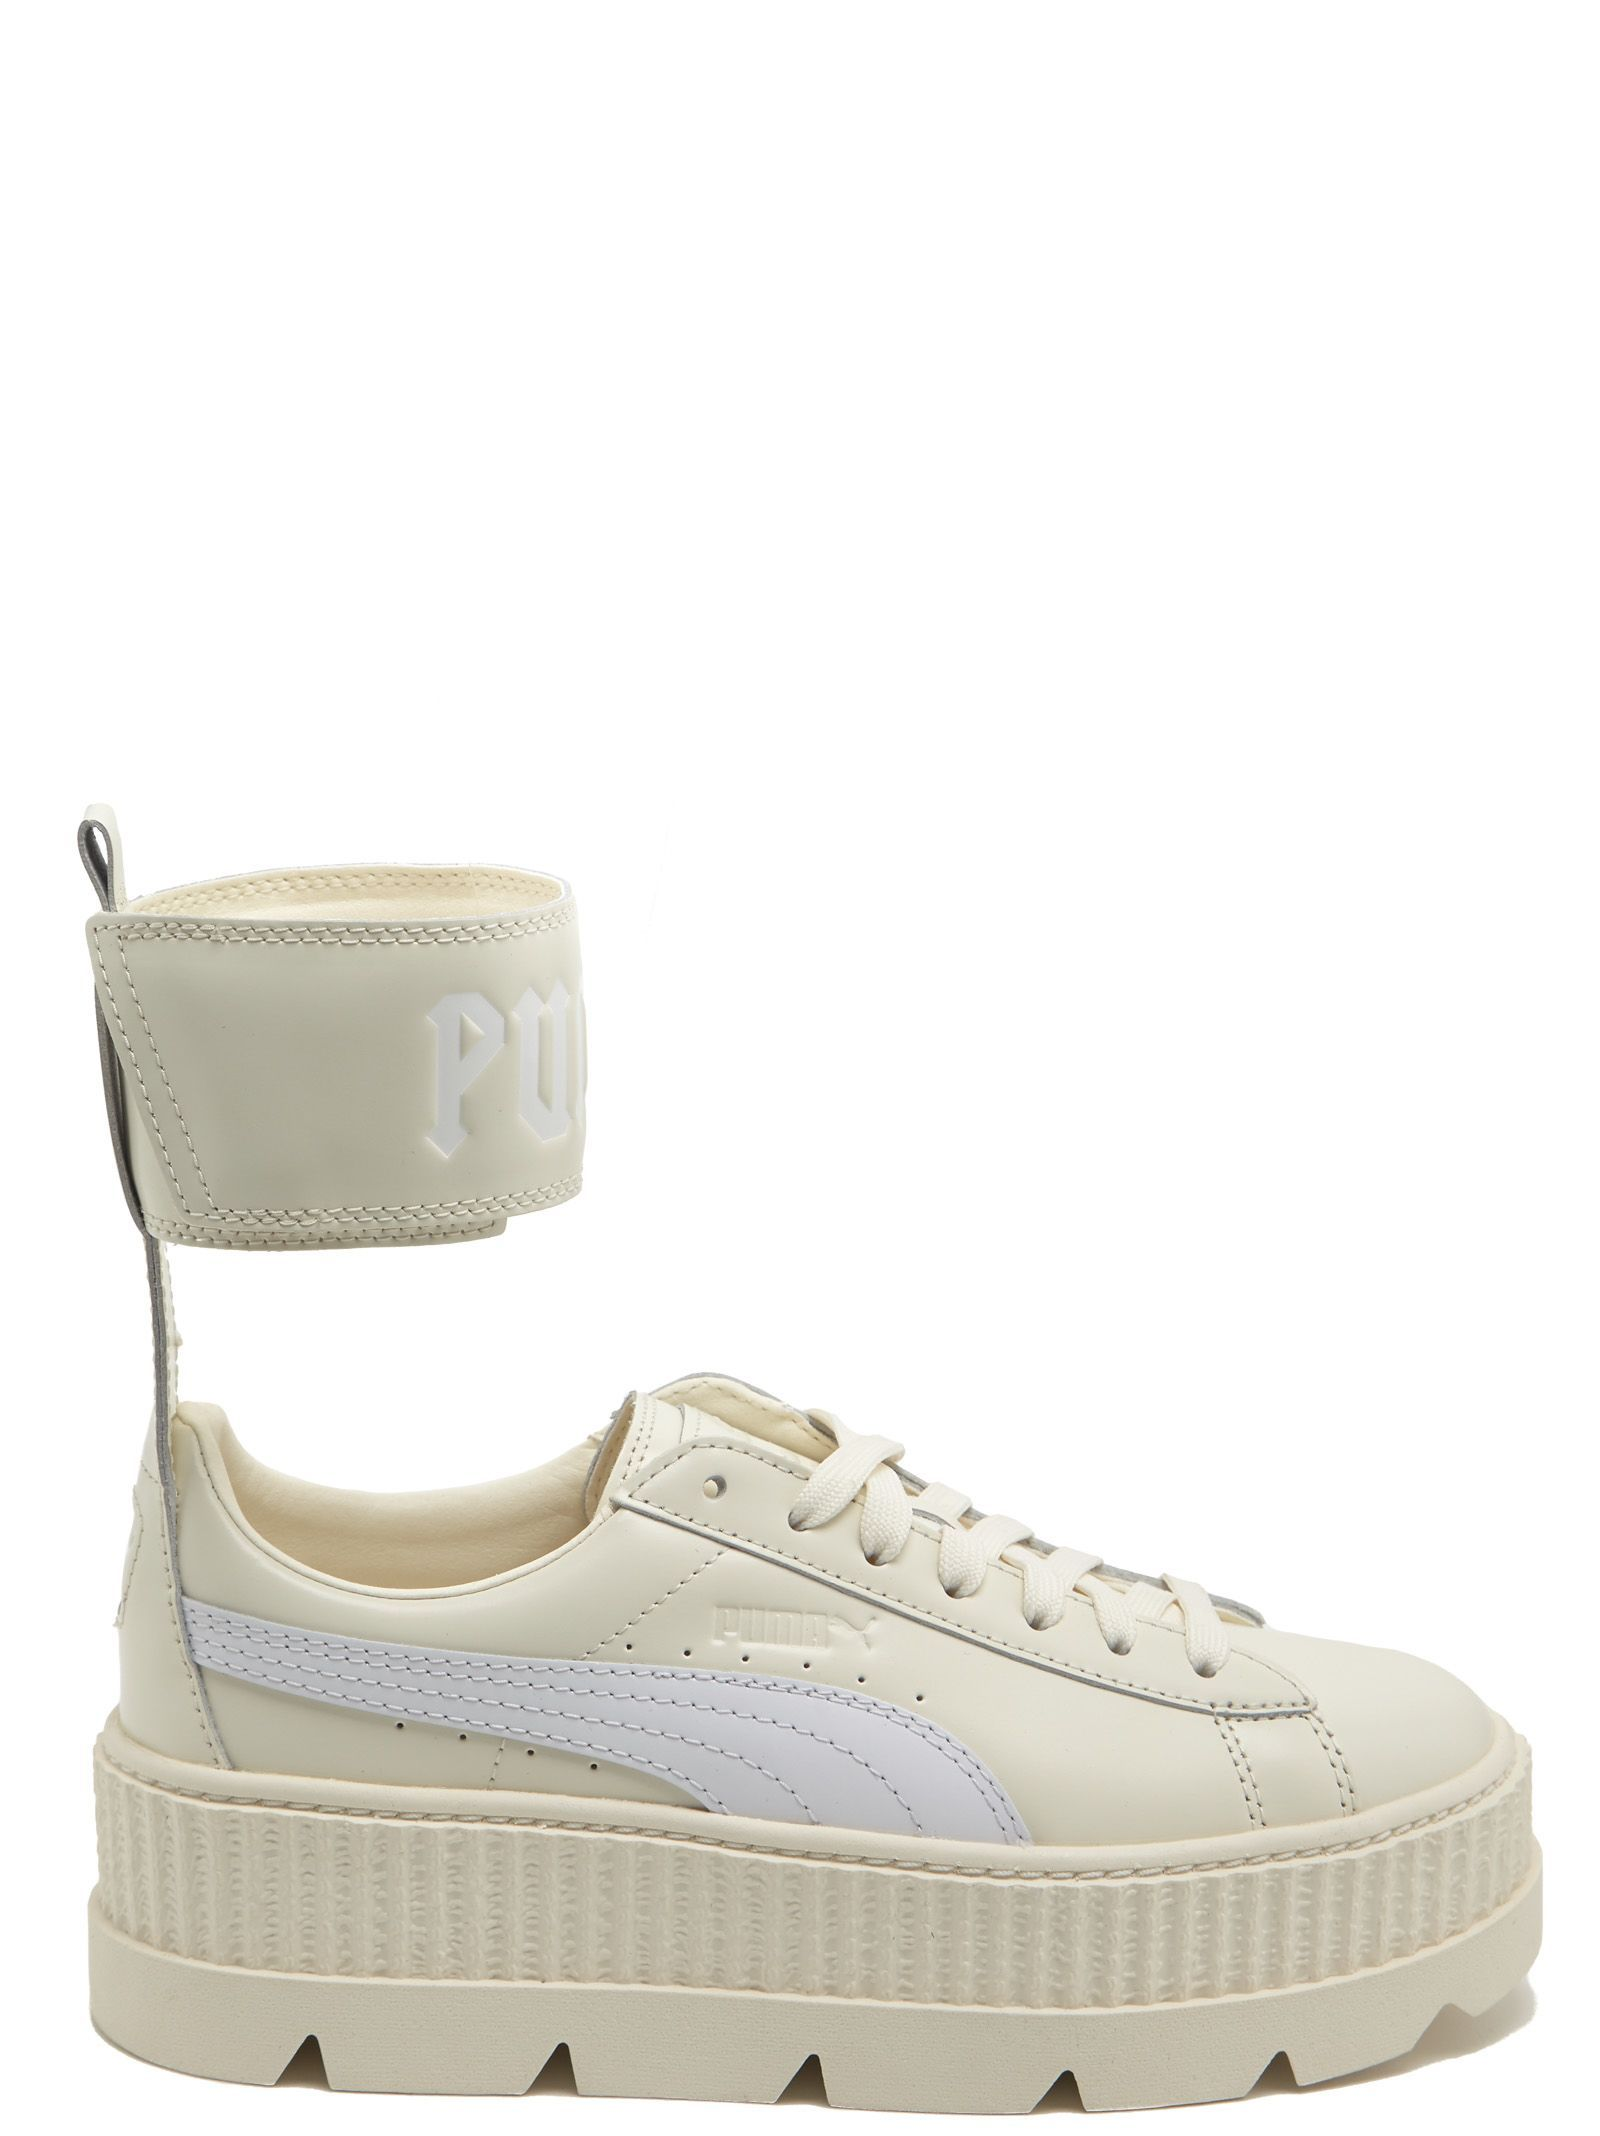 Save Big PUMA Creeper Suede & PUMA RIHANNA SHOES online store.